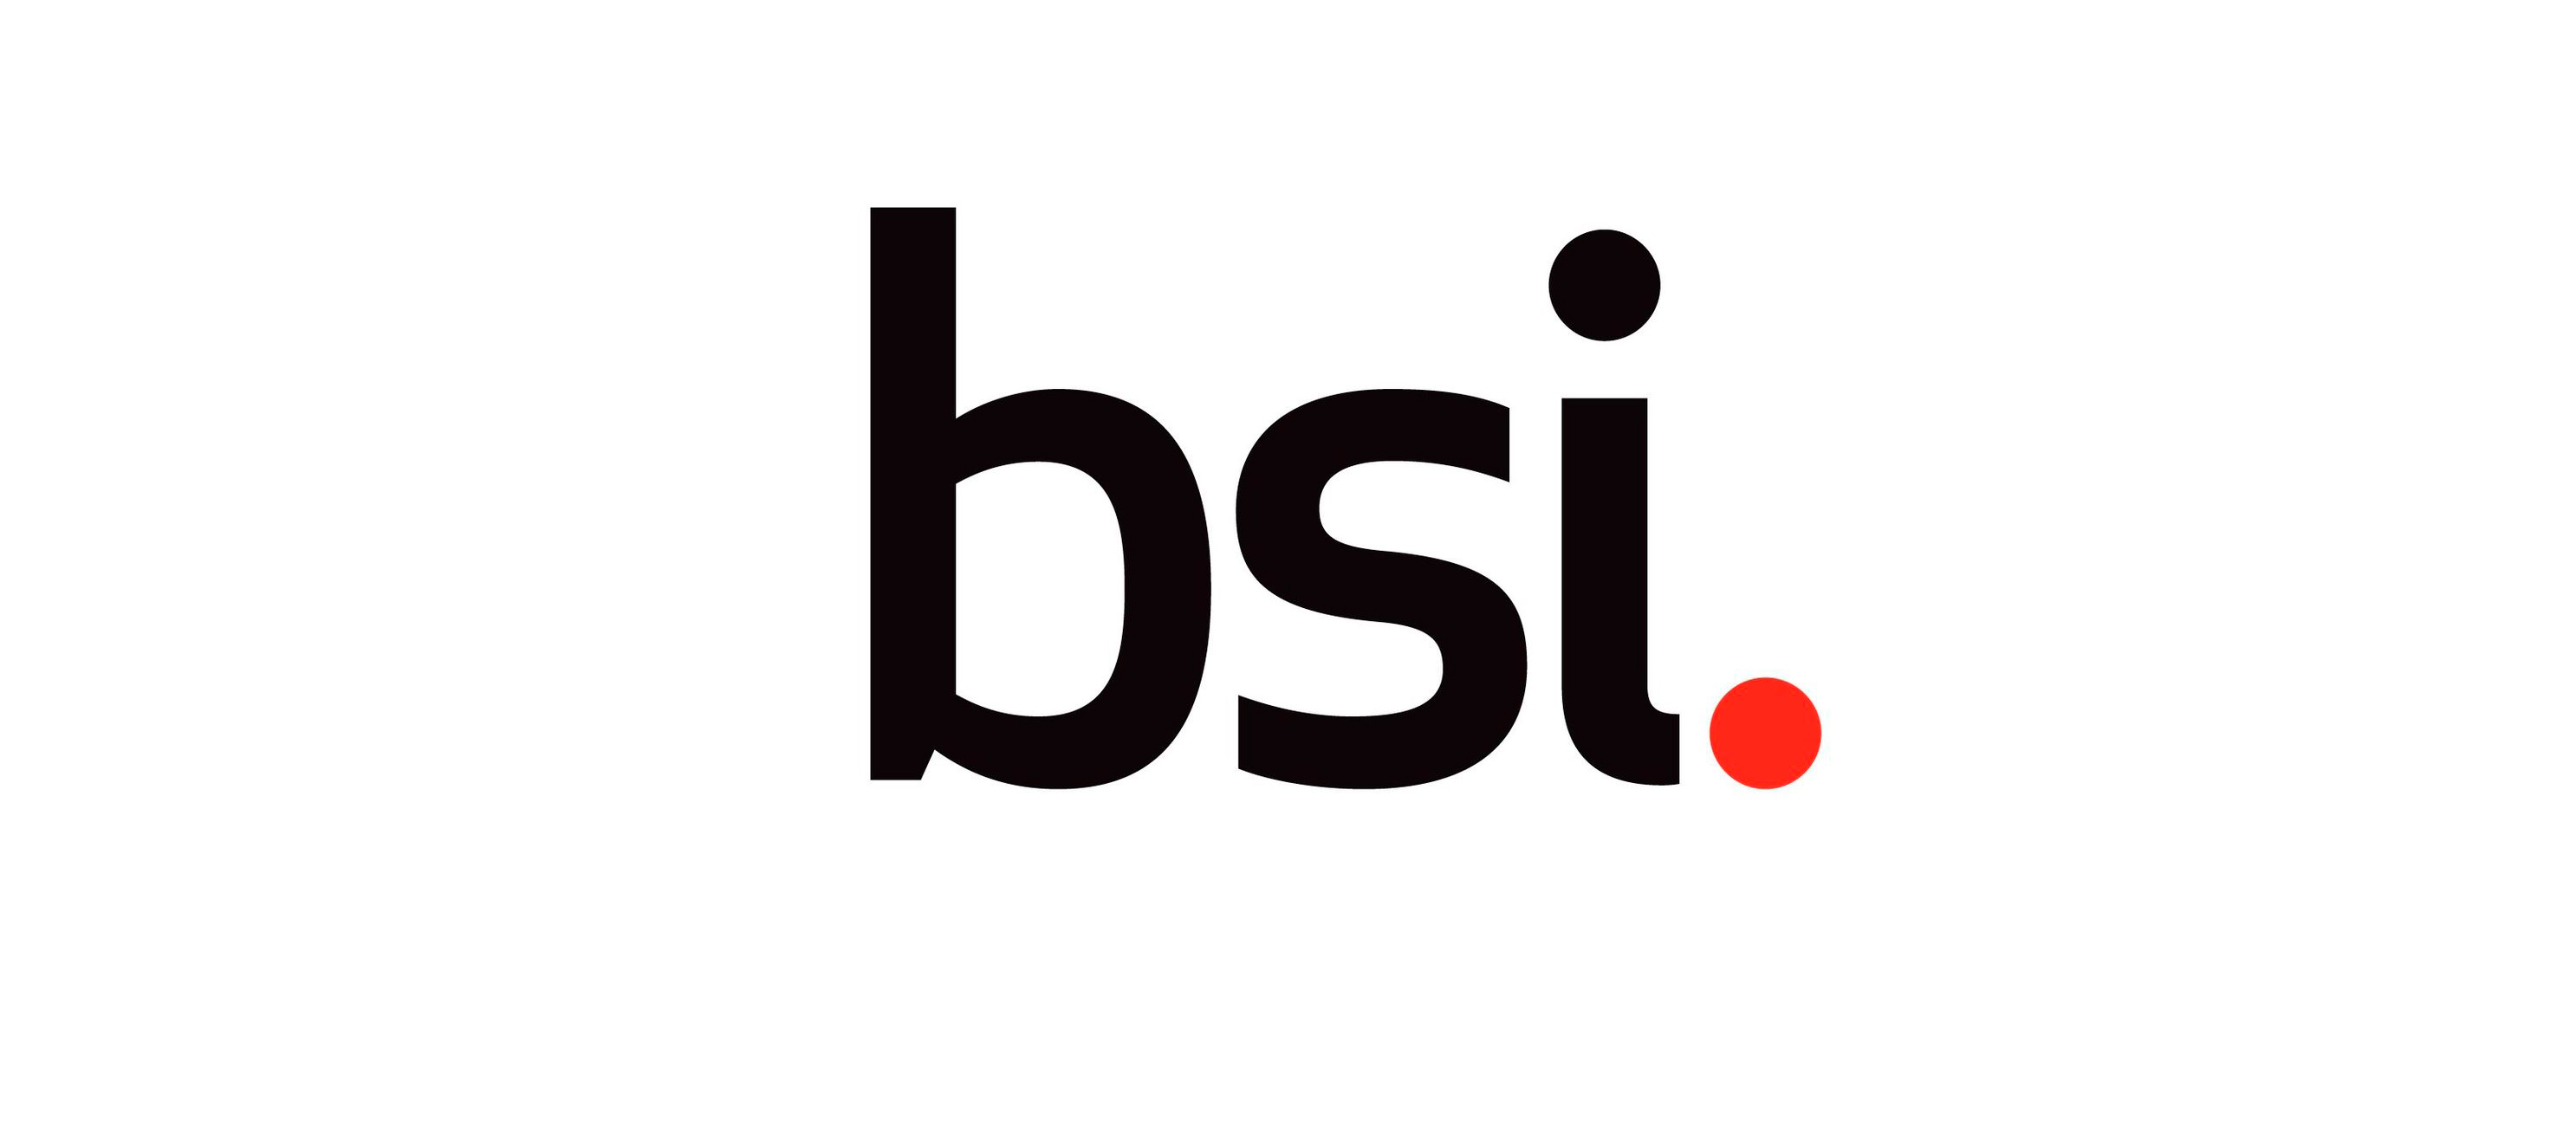 BSI Reveals Data Compliance Landscape Impact on Information Resilience